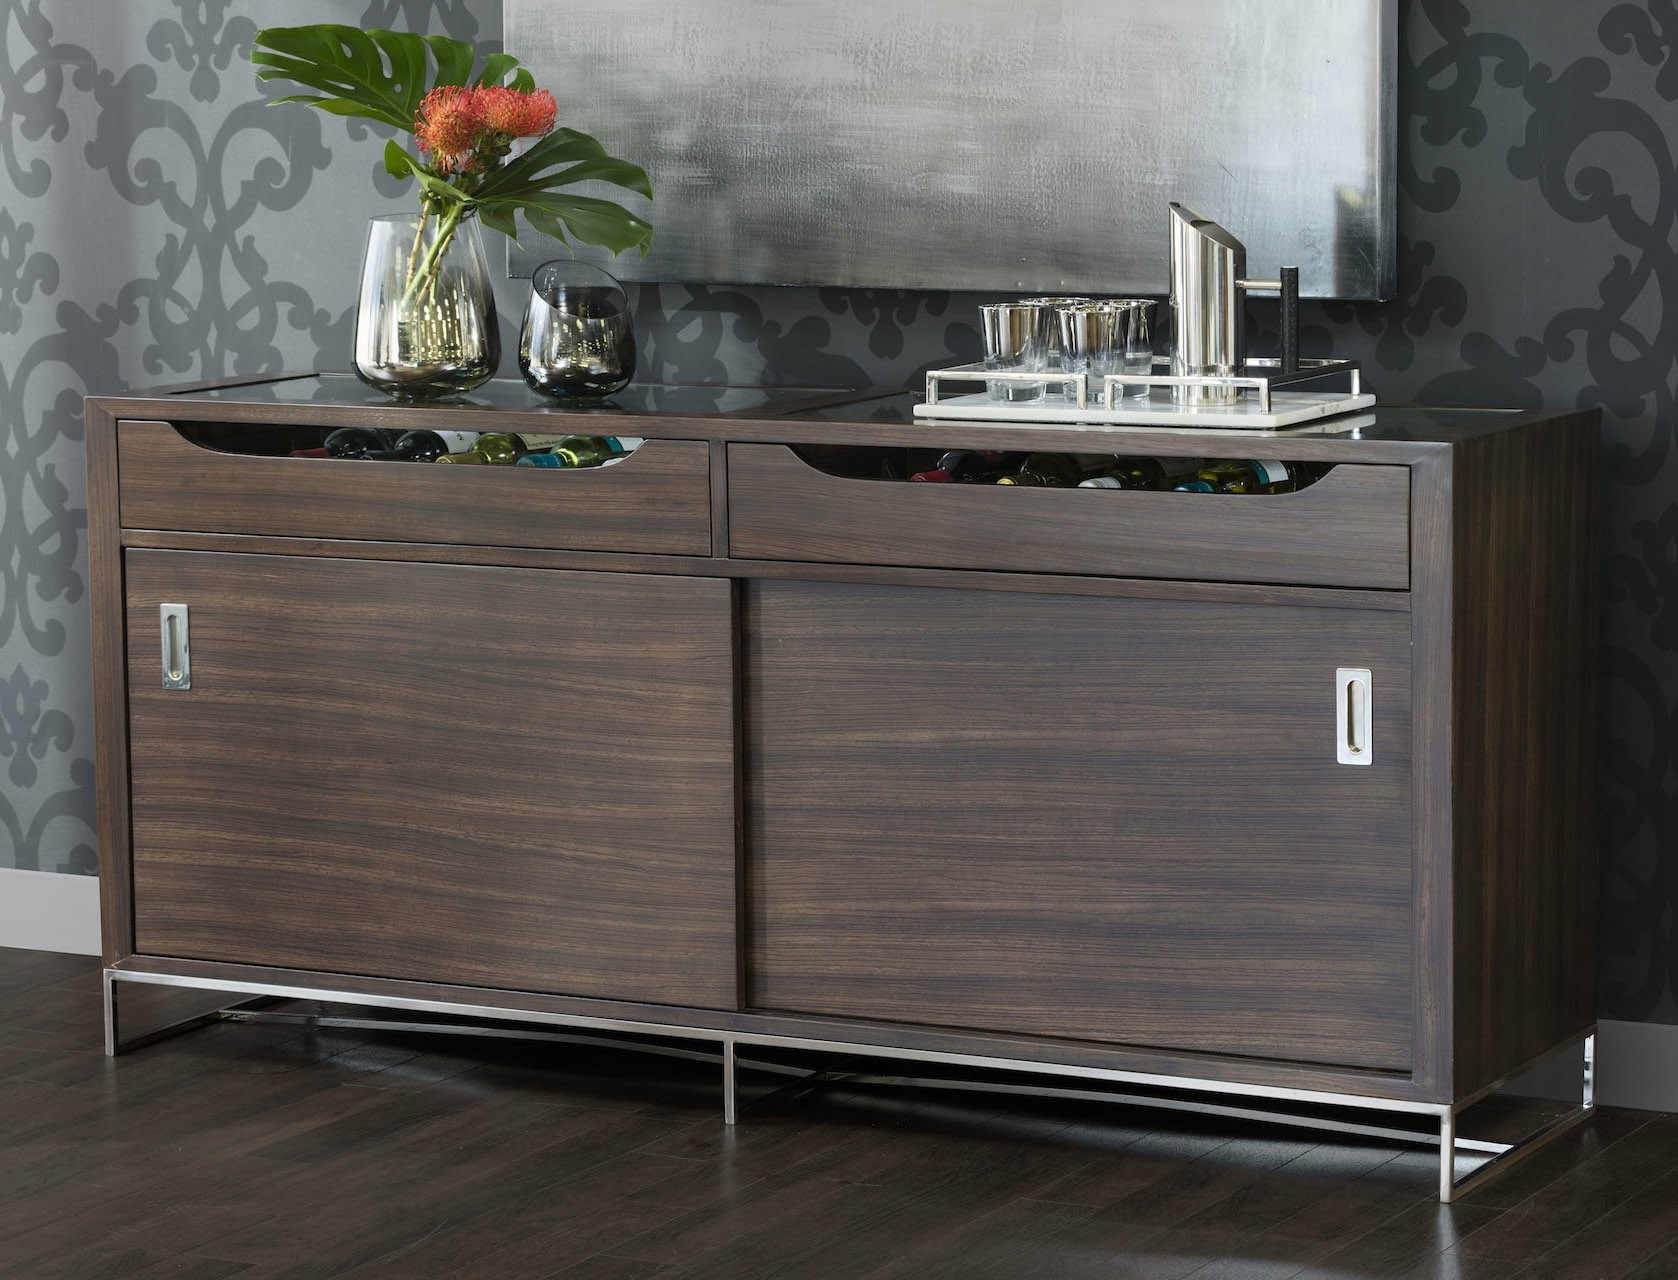 Media - Sideboards With Style throughout Metal Refinement 4 Door Sideboards (Image 22 of 30)